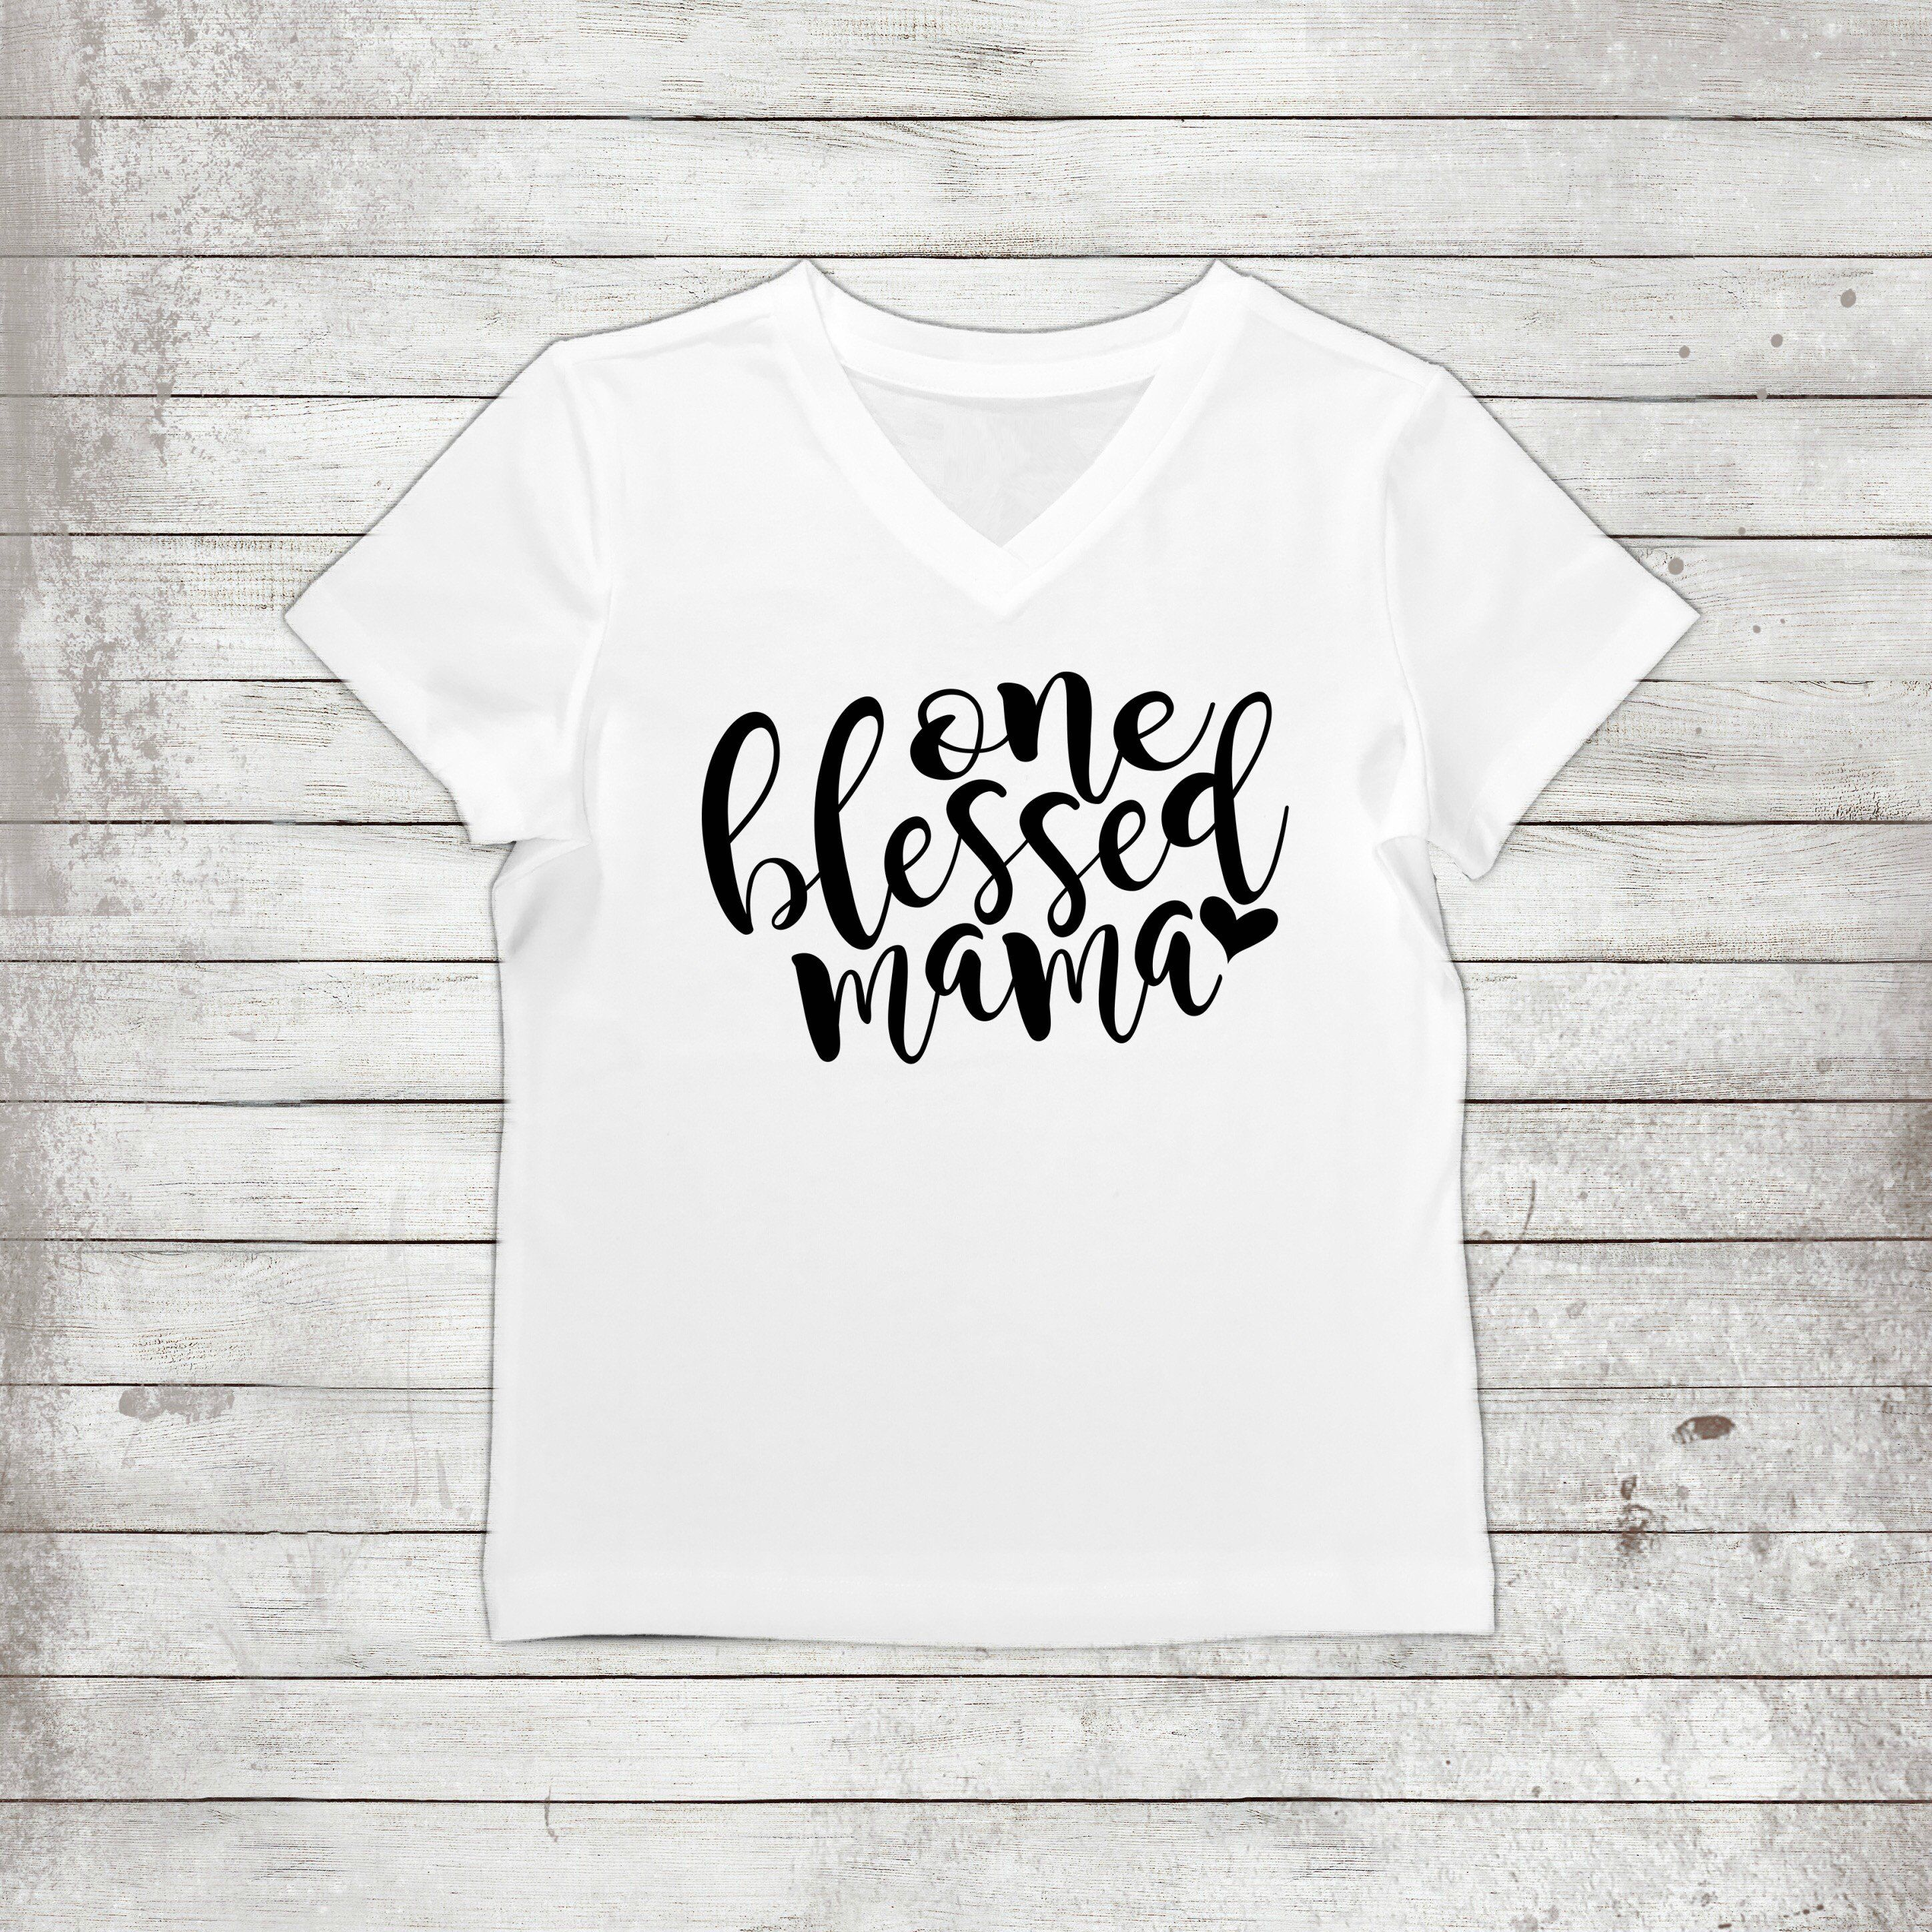 9c0841fd One Blessed Mama- Mom Life, Best Life, Mommy Life, Blessed Mom, Mother's  Day Gift, Tired As A Mother, Wife